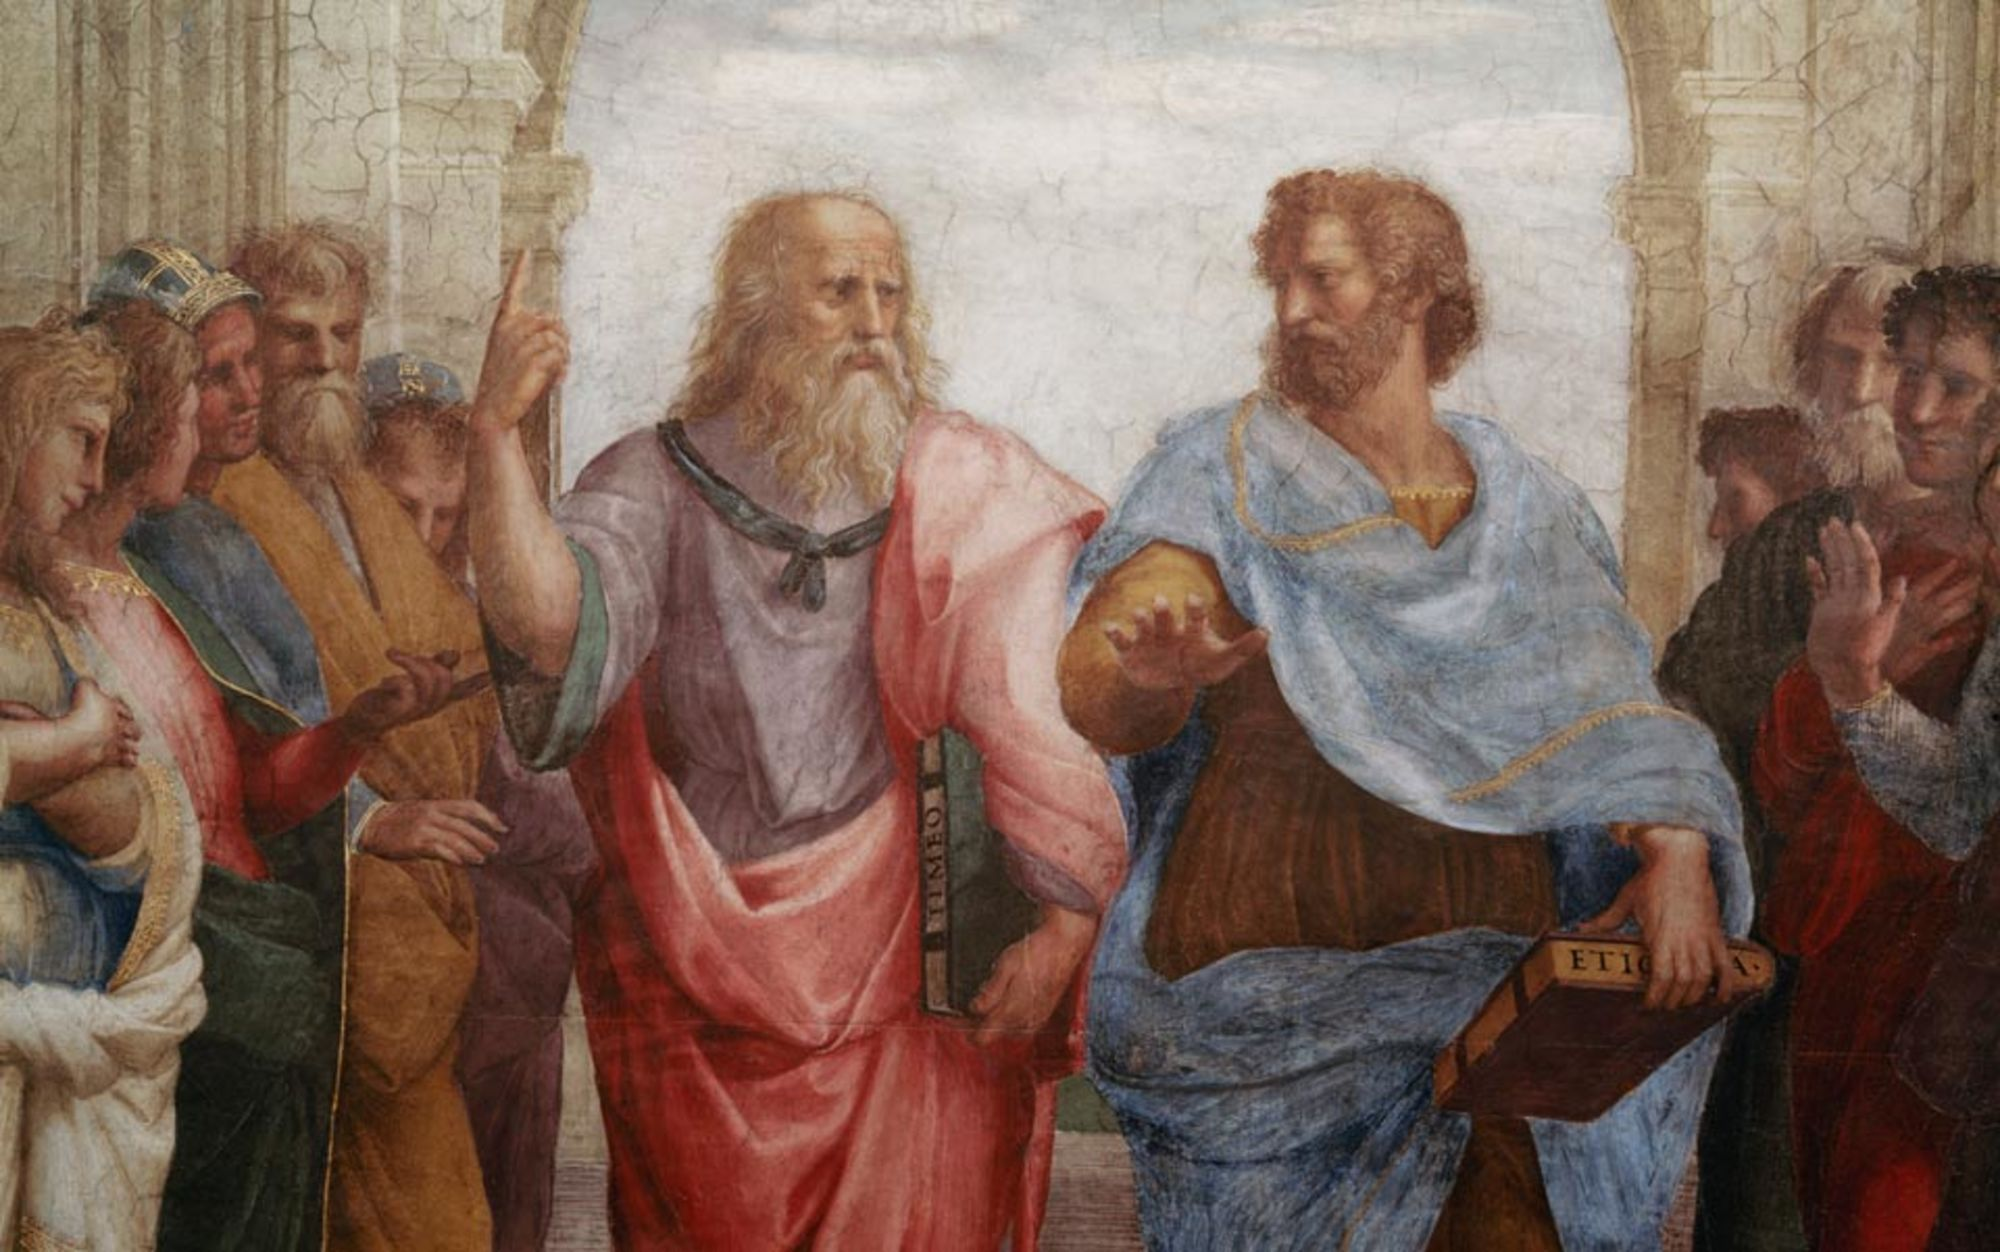 plato v s aristotle essay Aristotle on rhetoric essay aristotle (384-322 b c ) was a greek philosopher, educator, and scientist he was able to combine the thoughts of socrates and plato to create his own ideas and definition of rhetoric.